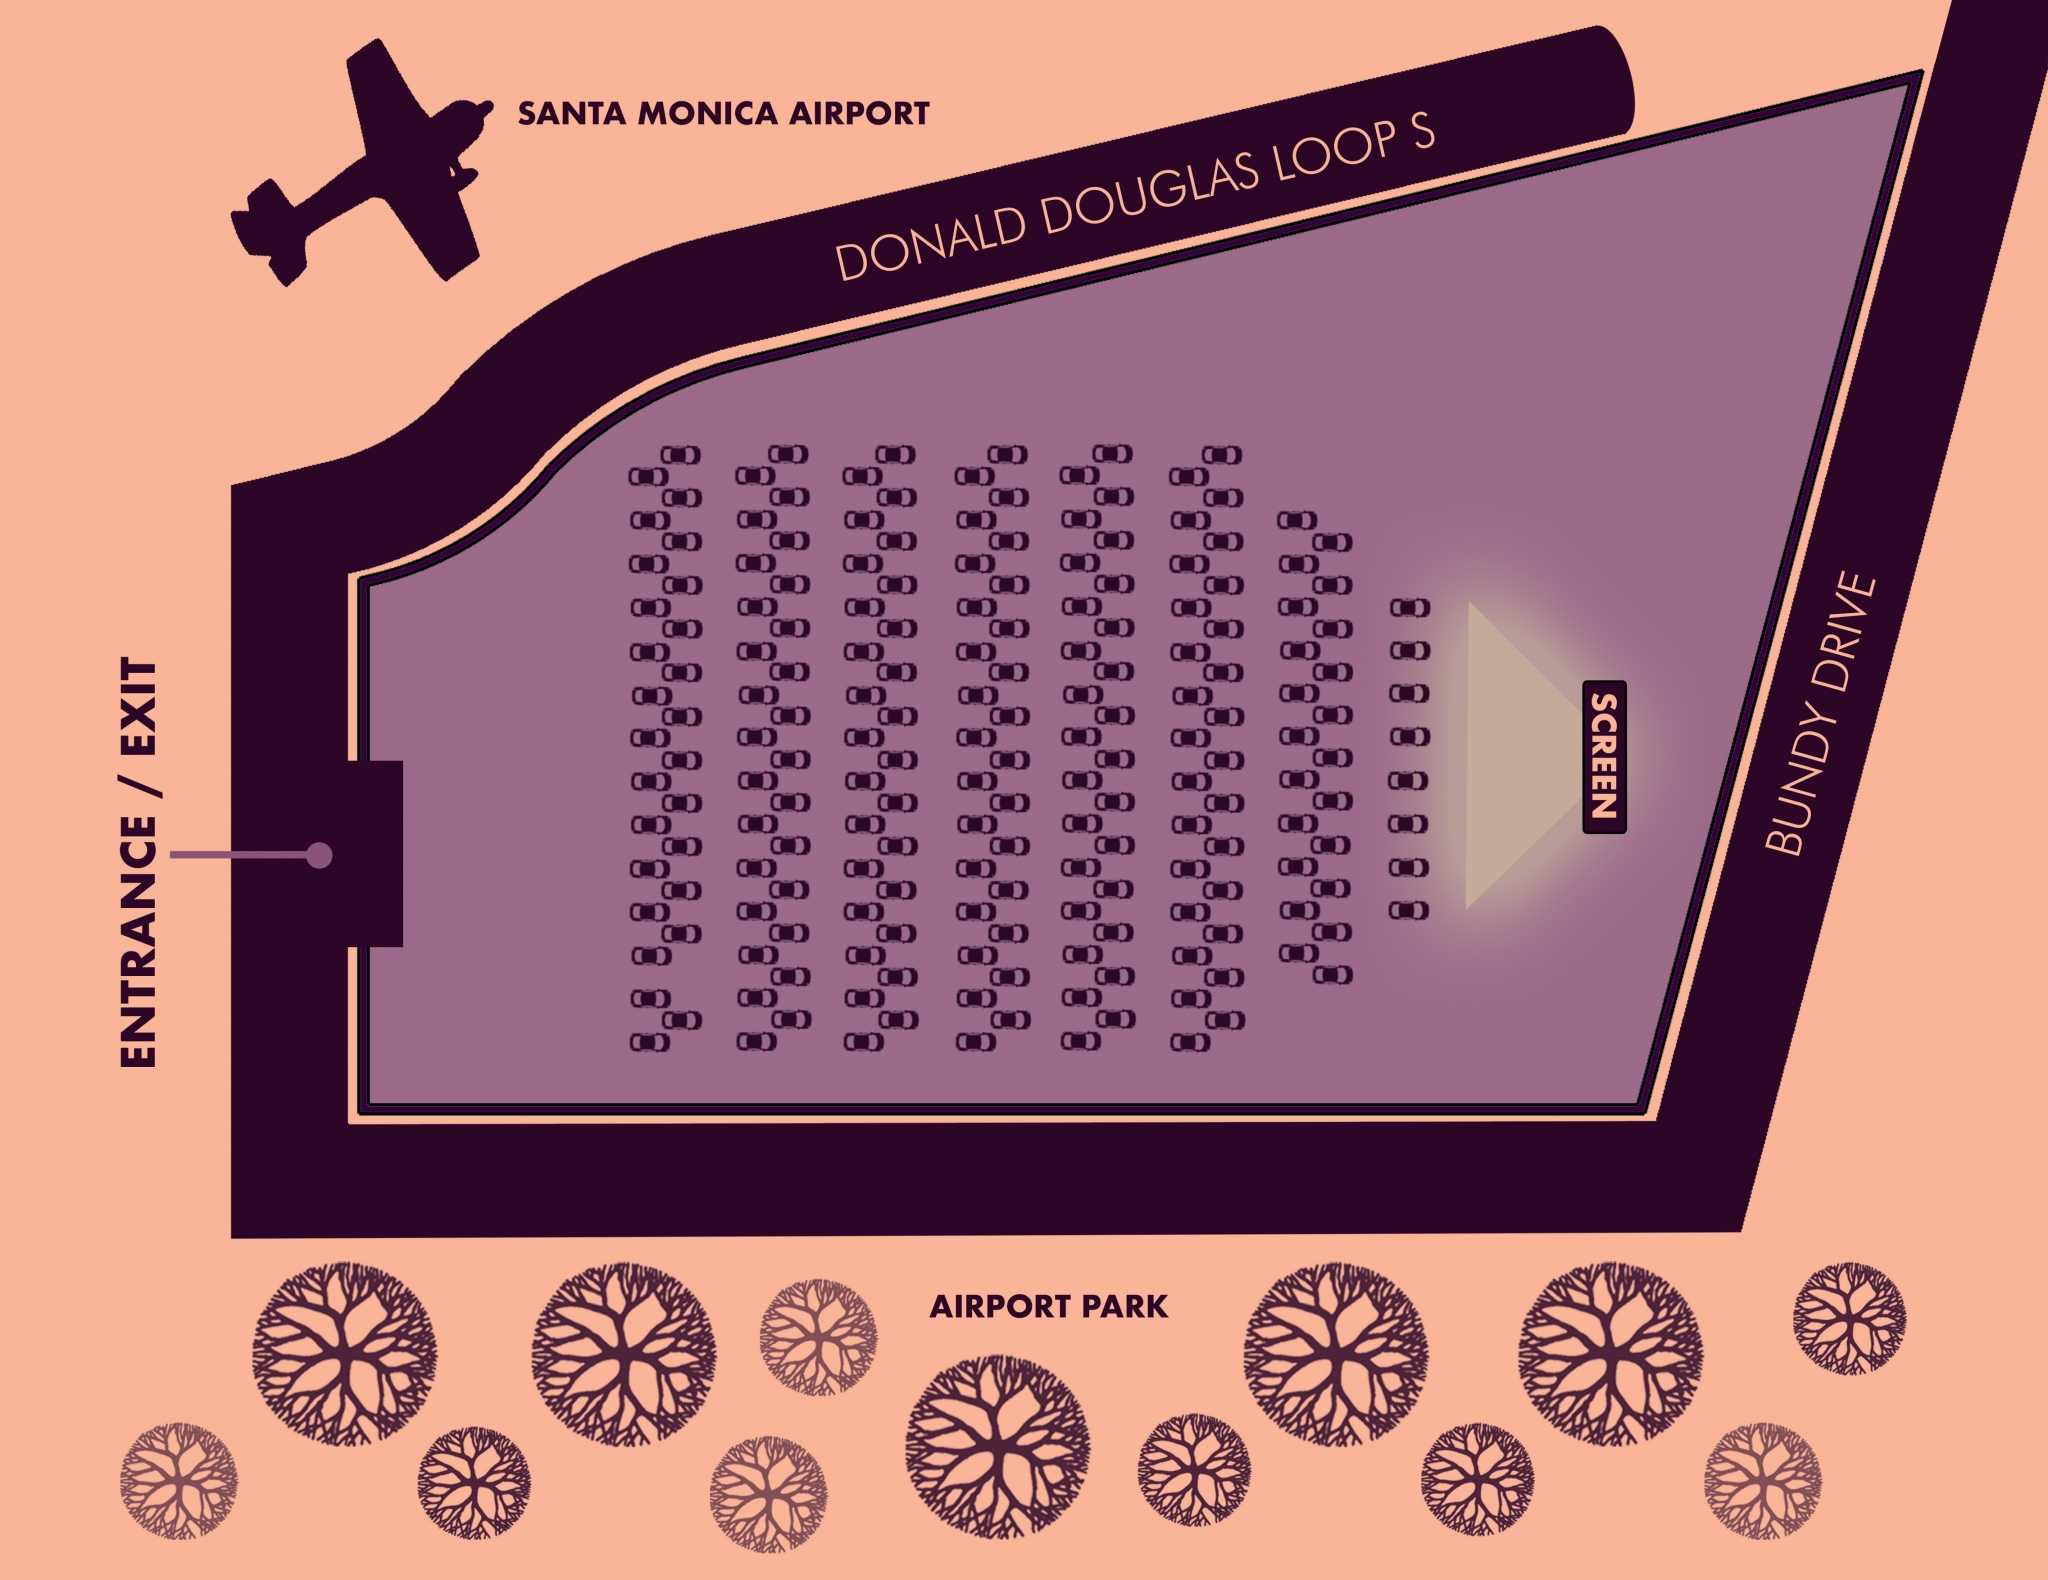 Santa Monica Airport Parking Map